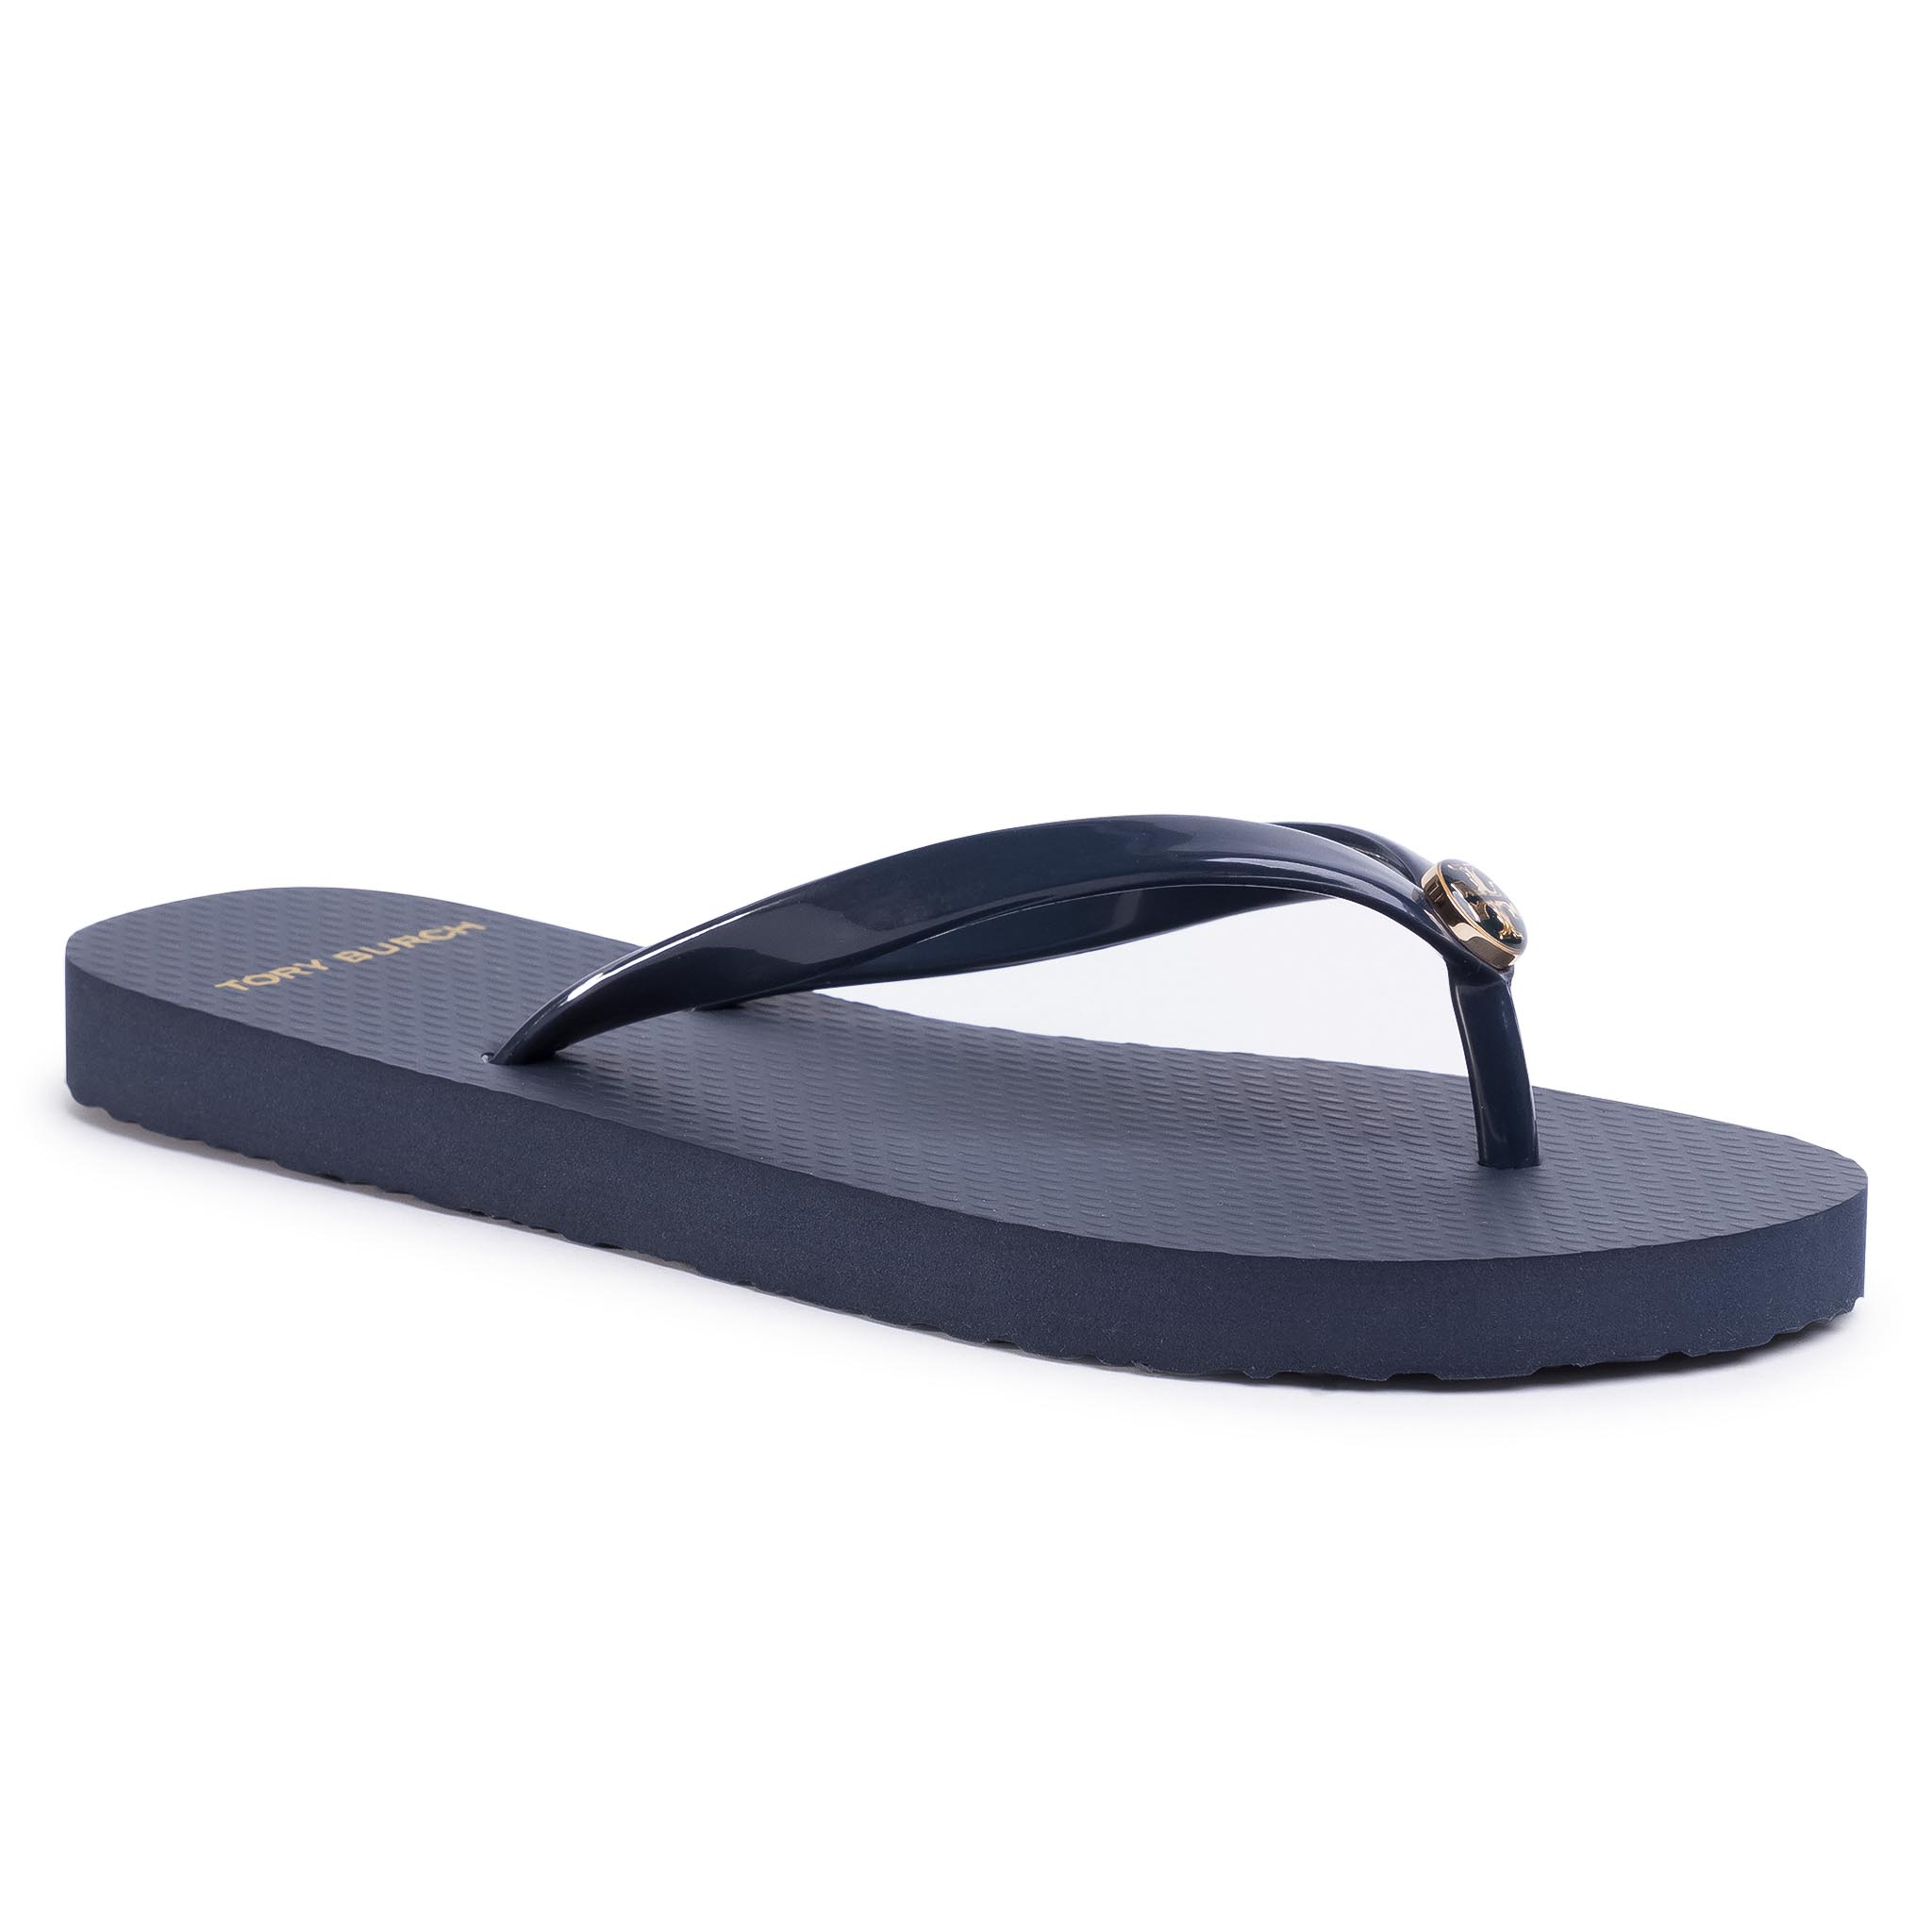 Flip flop TORY BURCH - Solid Thin Flip Flop 47405 Perfect Navy 430